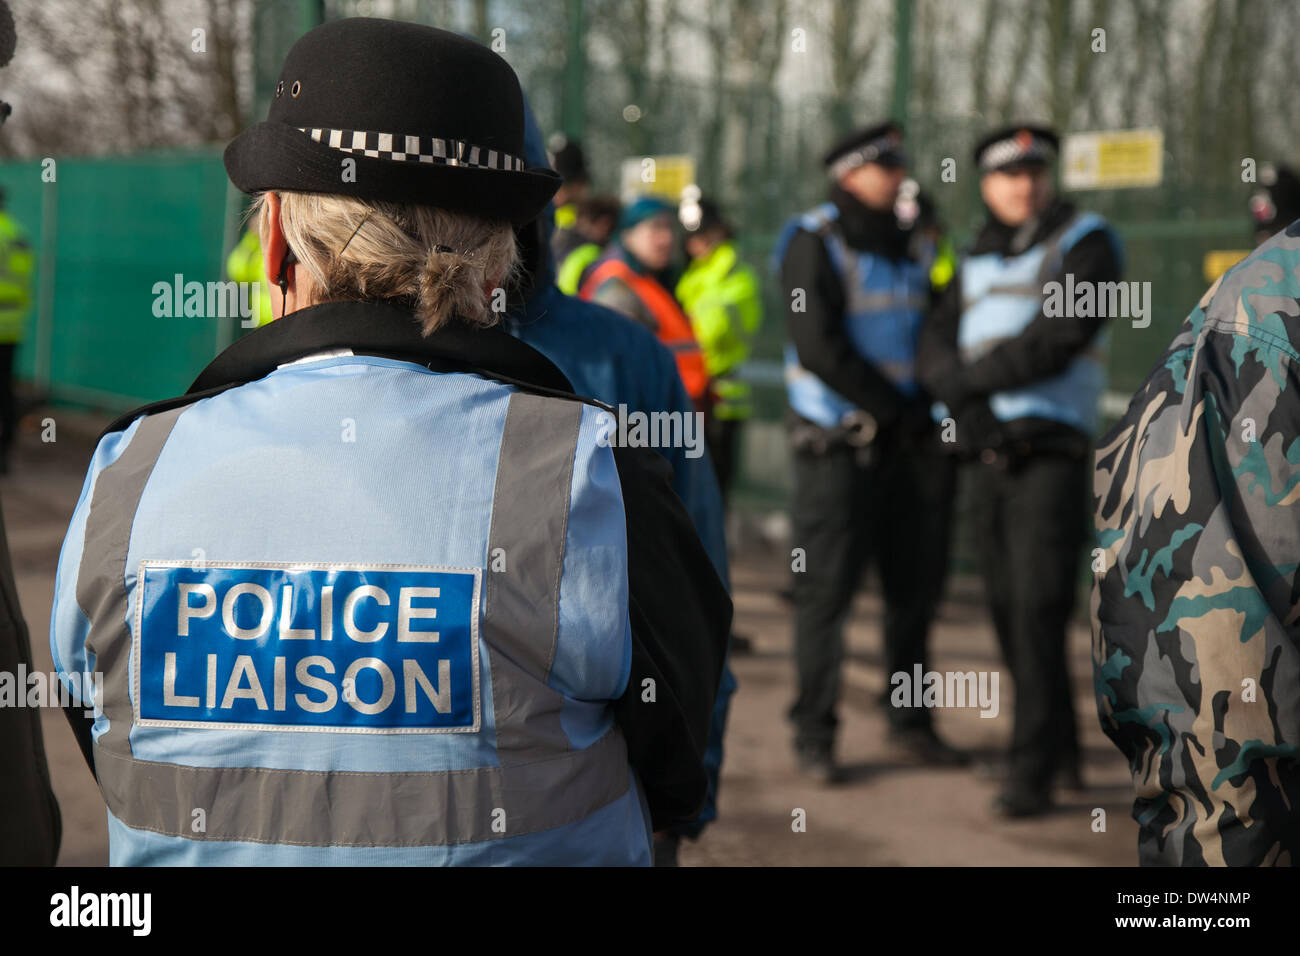 Manchester, Barton Moss, UK. 27th February, 2014.  Protests continue at IGAS Drilling Site.  Greater Manchester Policing operation at Barton Moss Drilling Site as protesters seek to delay and obstruct delivery vehicles and drilling equipment en-route to the controversial gas exploration site. Fracking protestors have set up a camp at Barton Moss Road, Eccles a potential methane-gas extraction site in Salford, Greater Manchester. - Stock Image